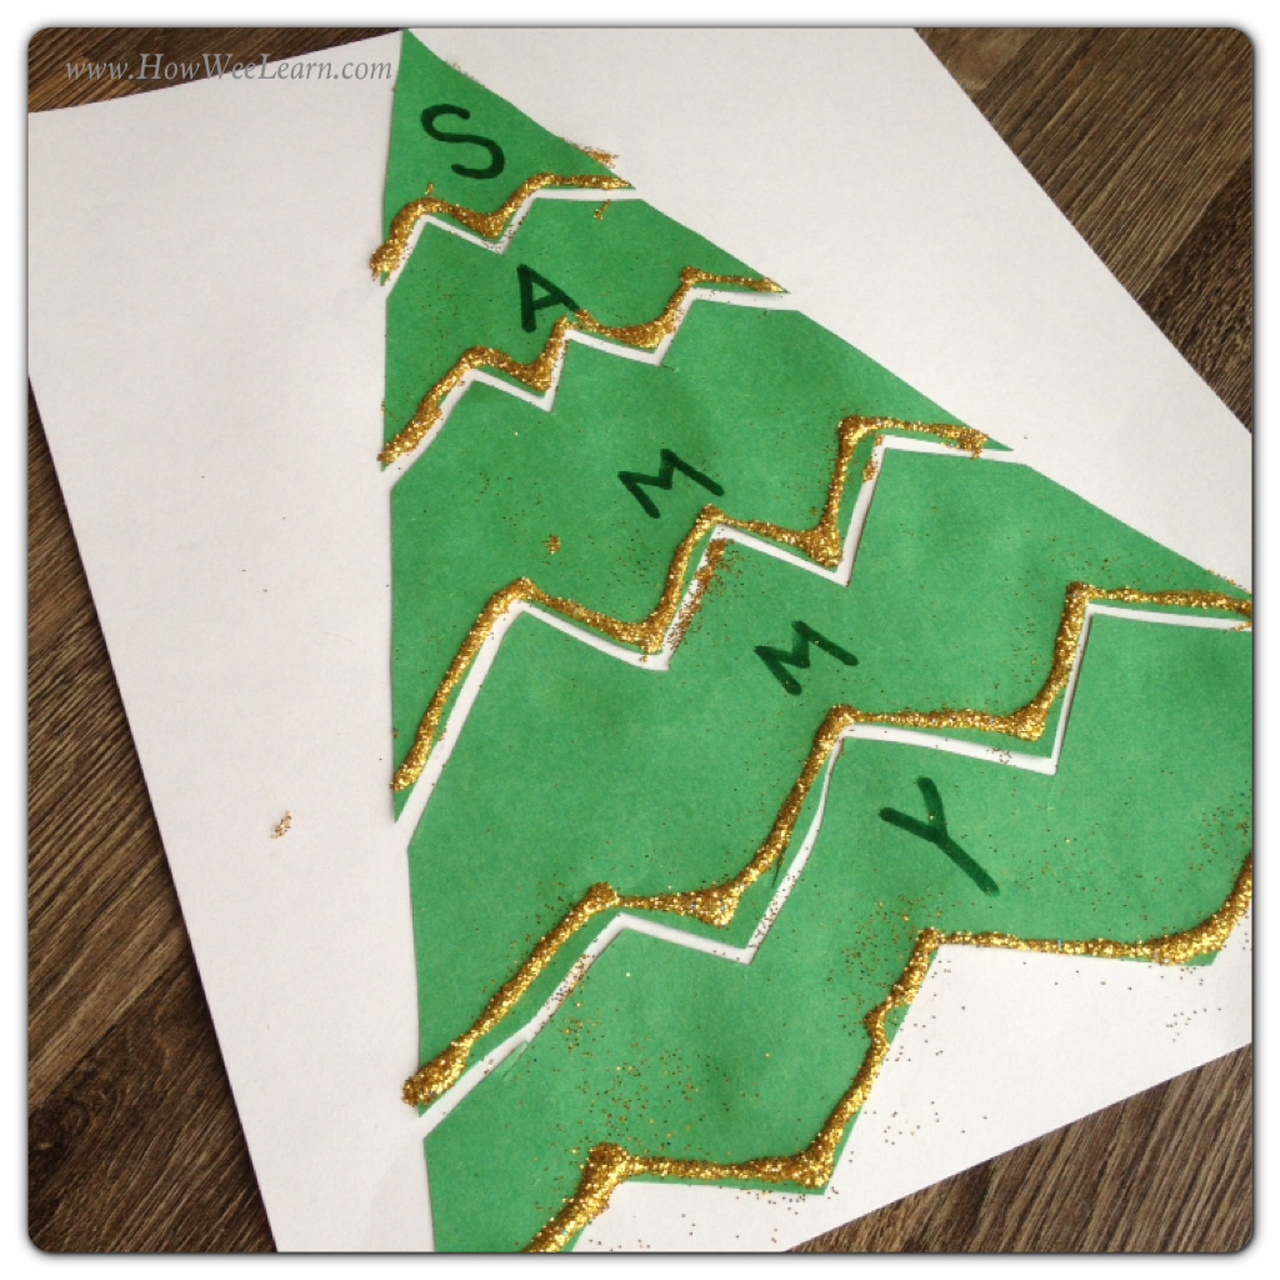 Preschool christmas projects name puzzles how wee learn for Christmas crafts for preschoolers pinterest